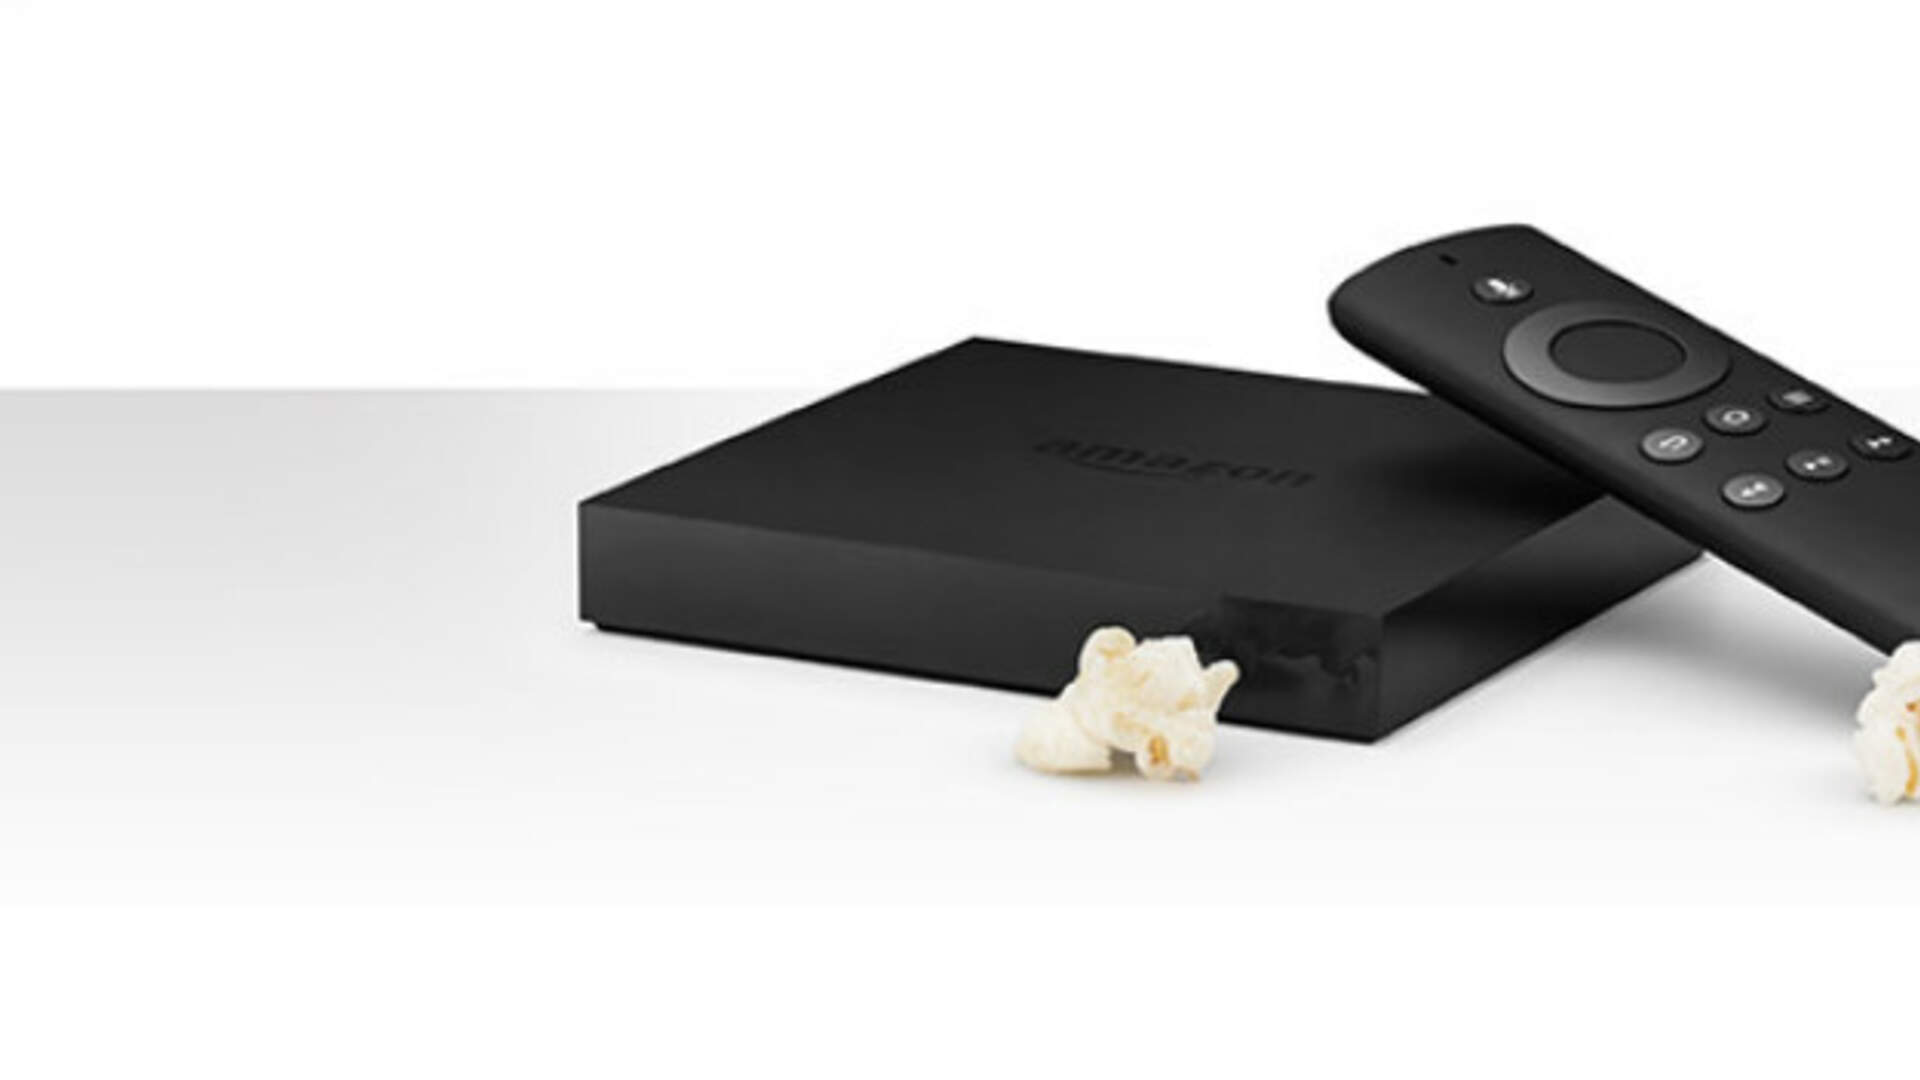 Amazon Announces the Fire TV Game and Media Streaming Box